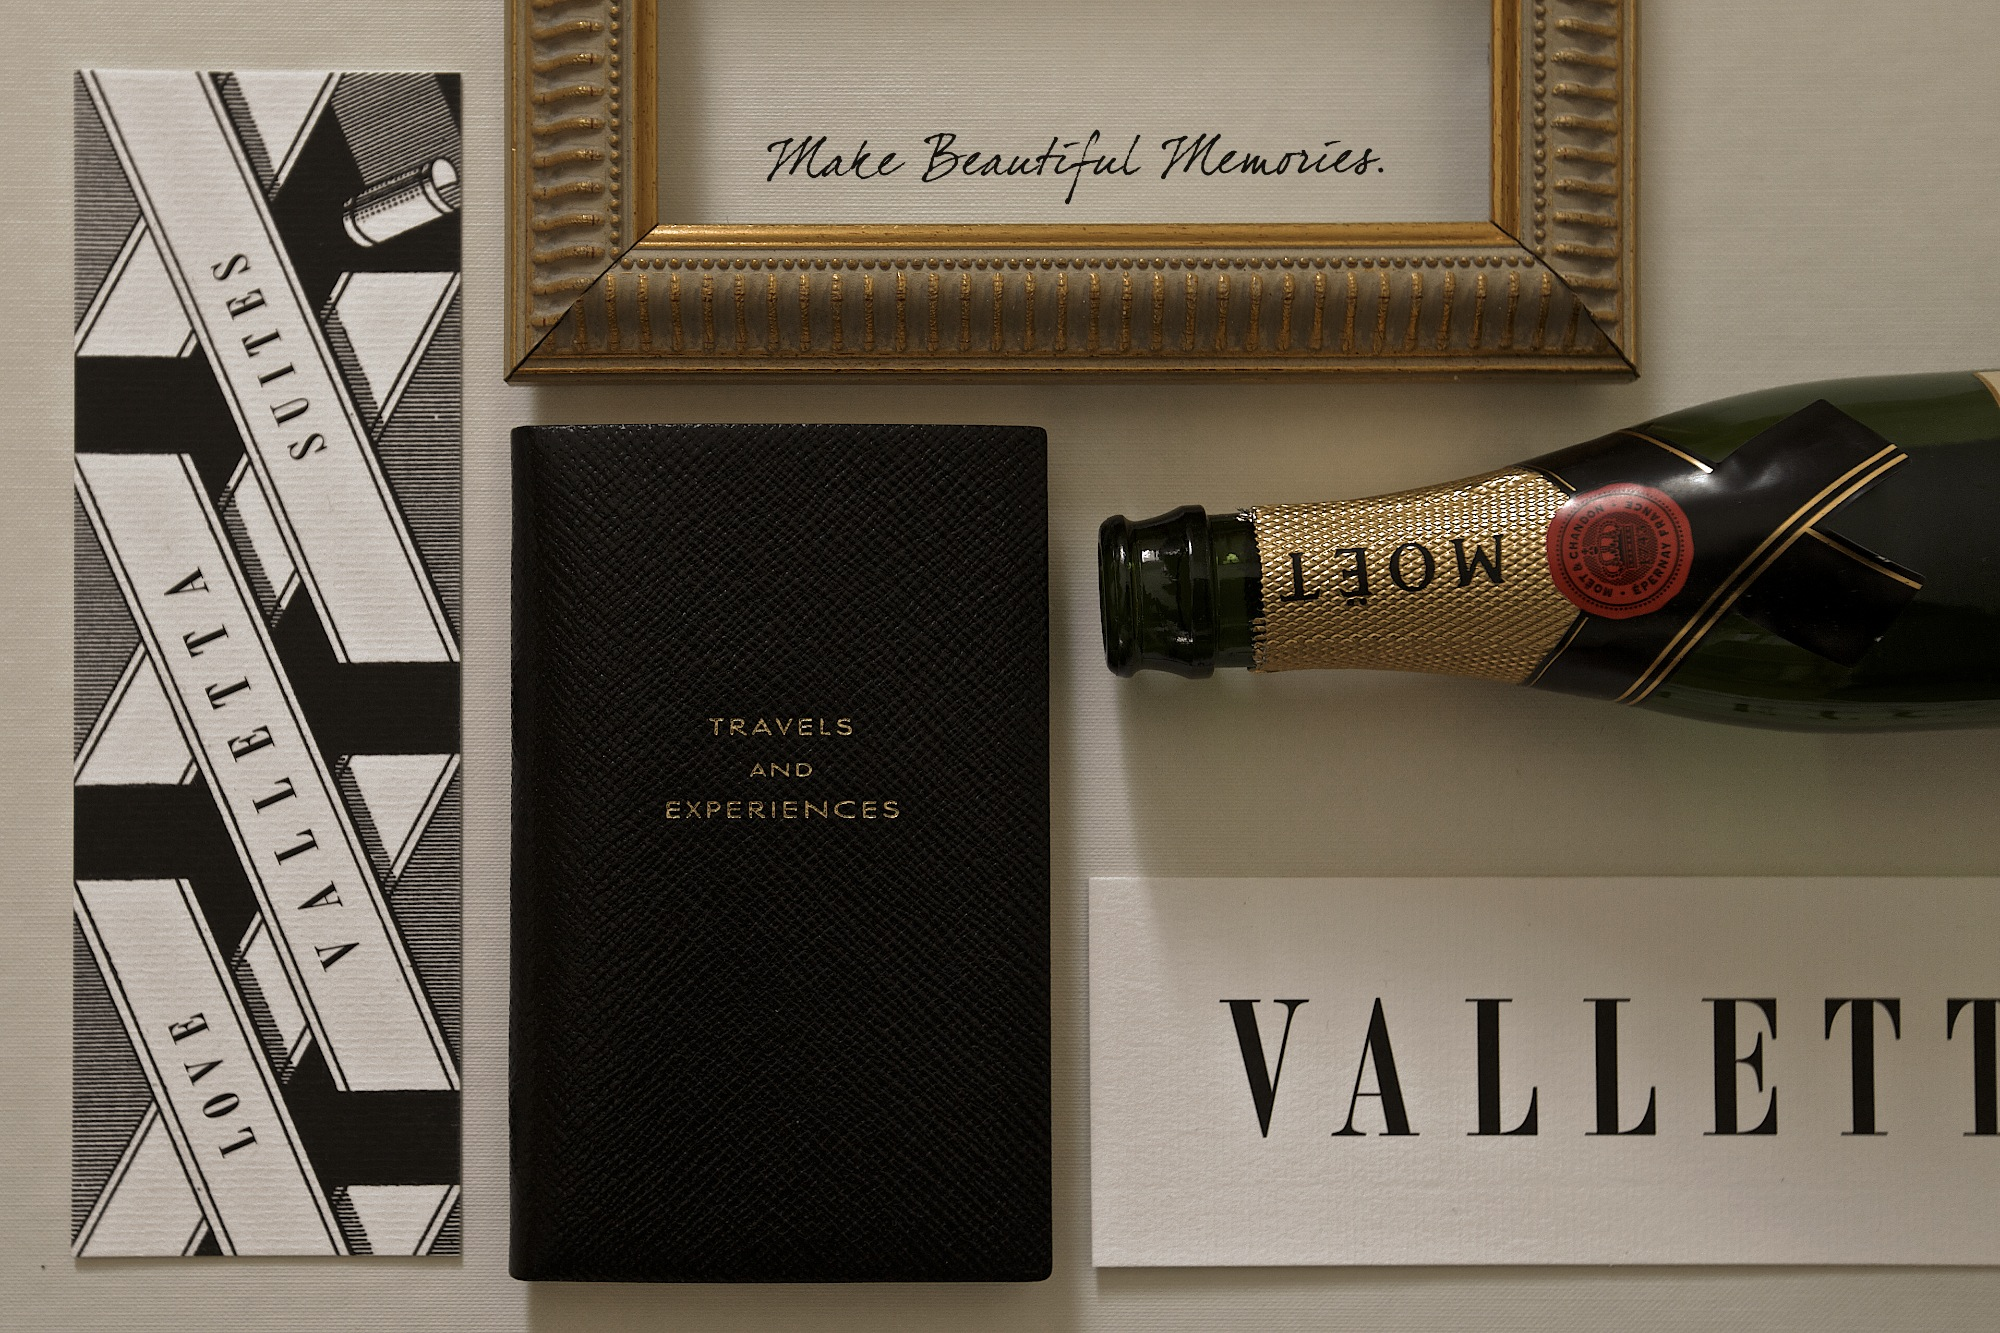 Celebrate in Valletta with Valletta Suites